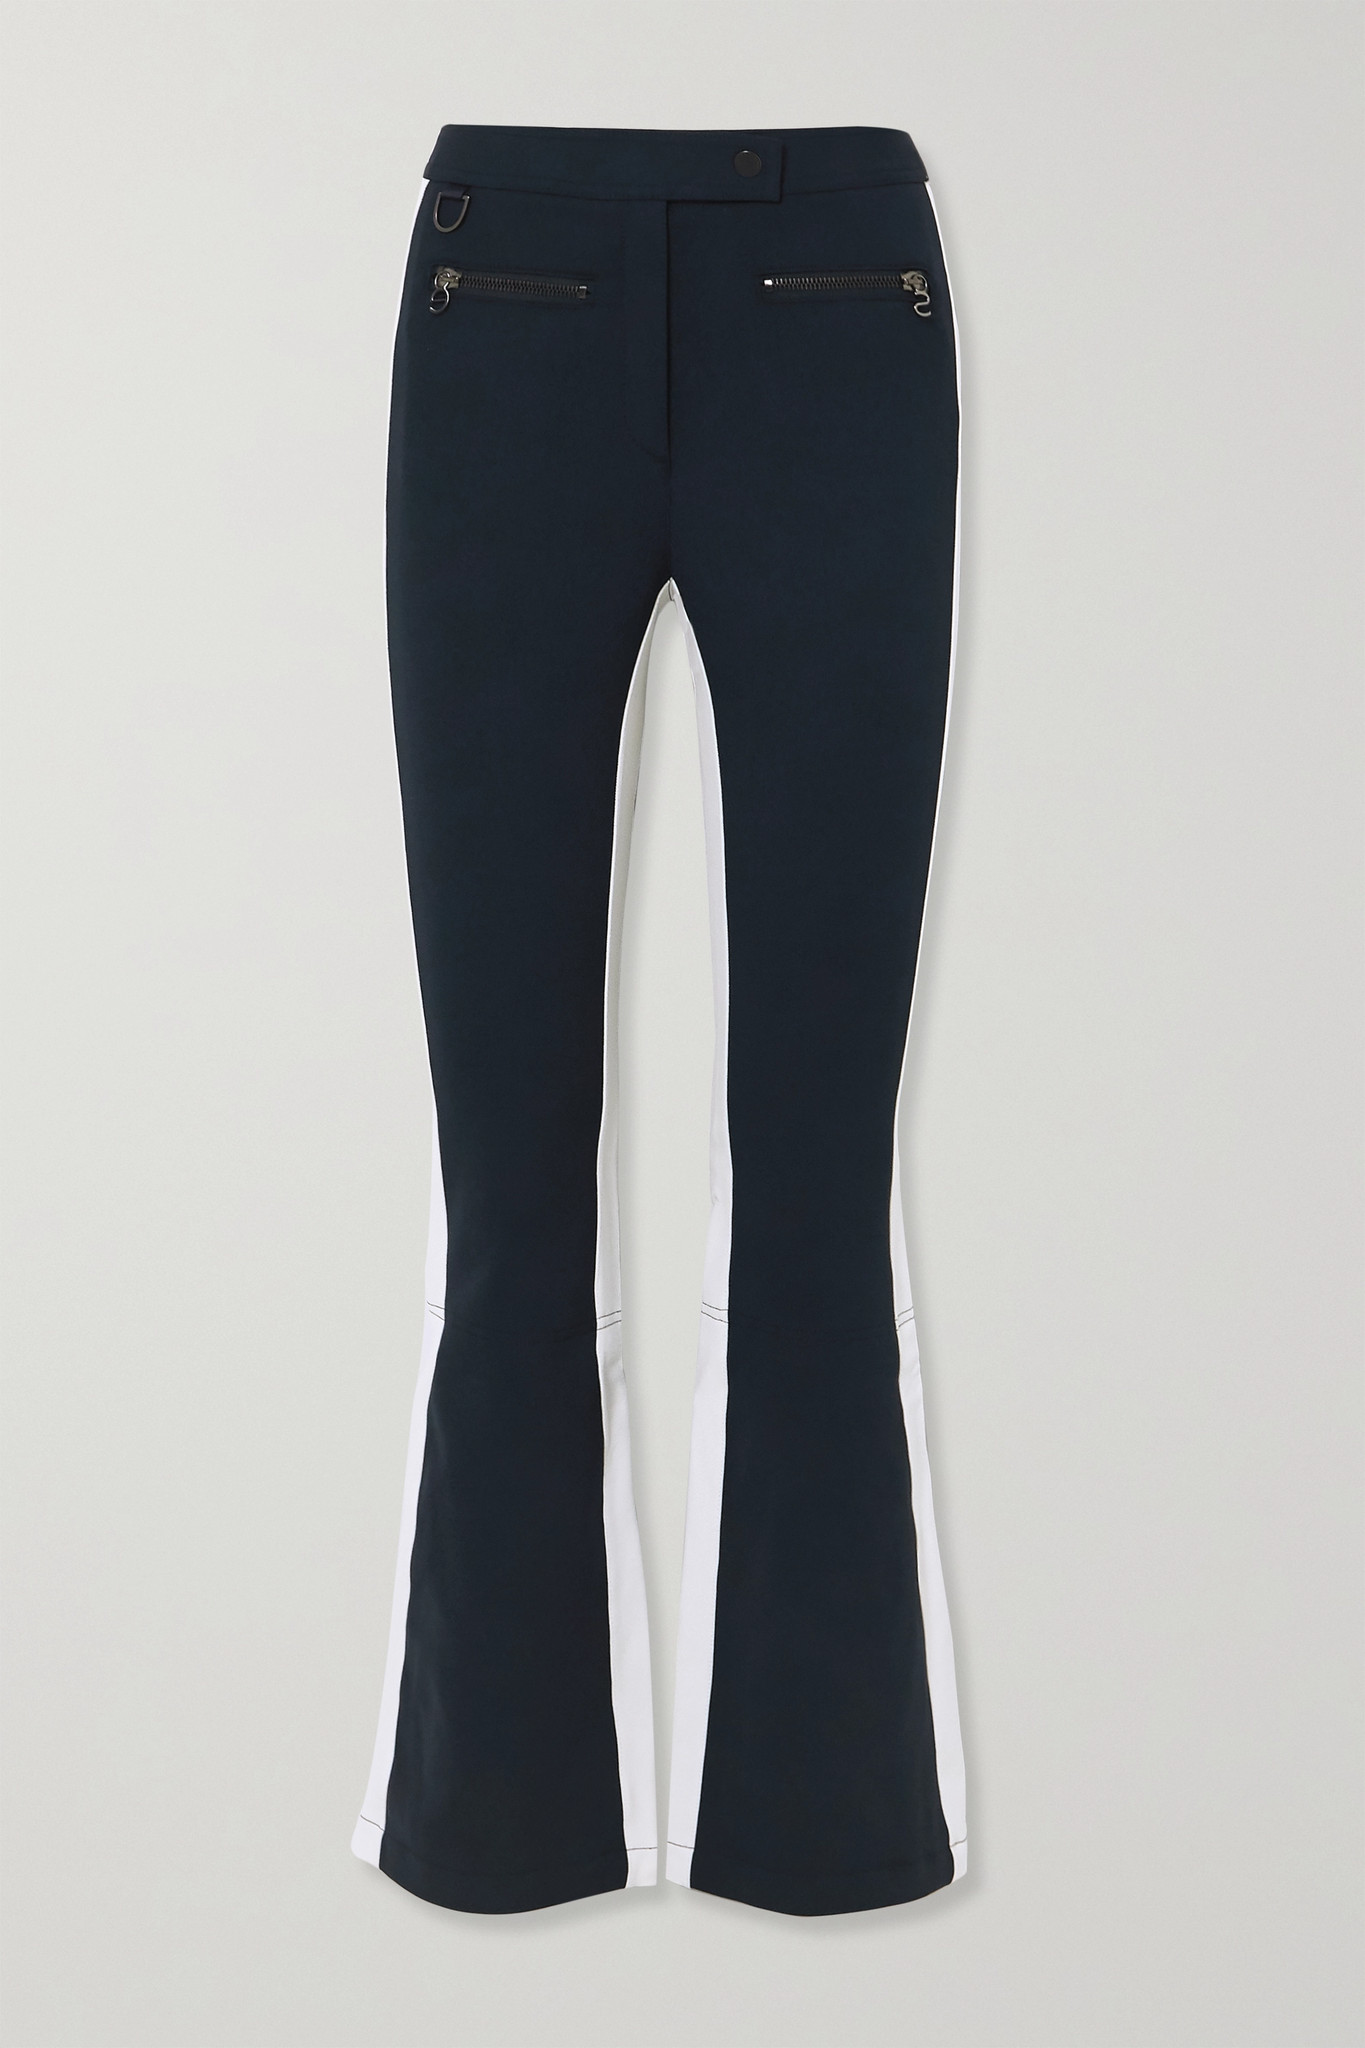 ERIN SNOW - Phia Flared Ski Pants - Blue - US8